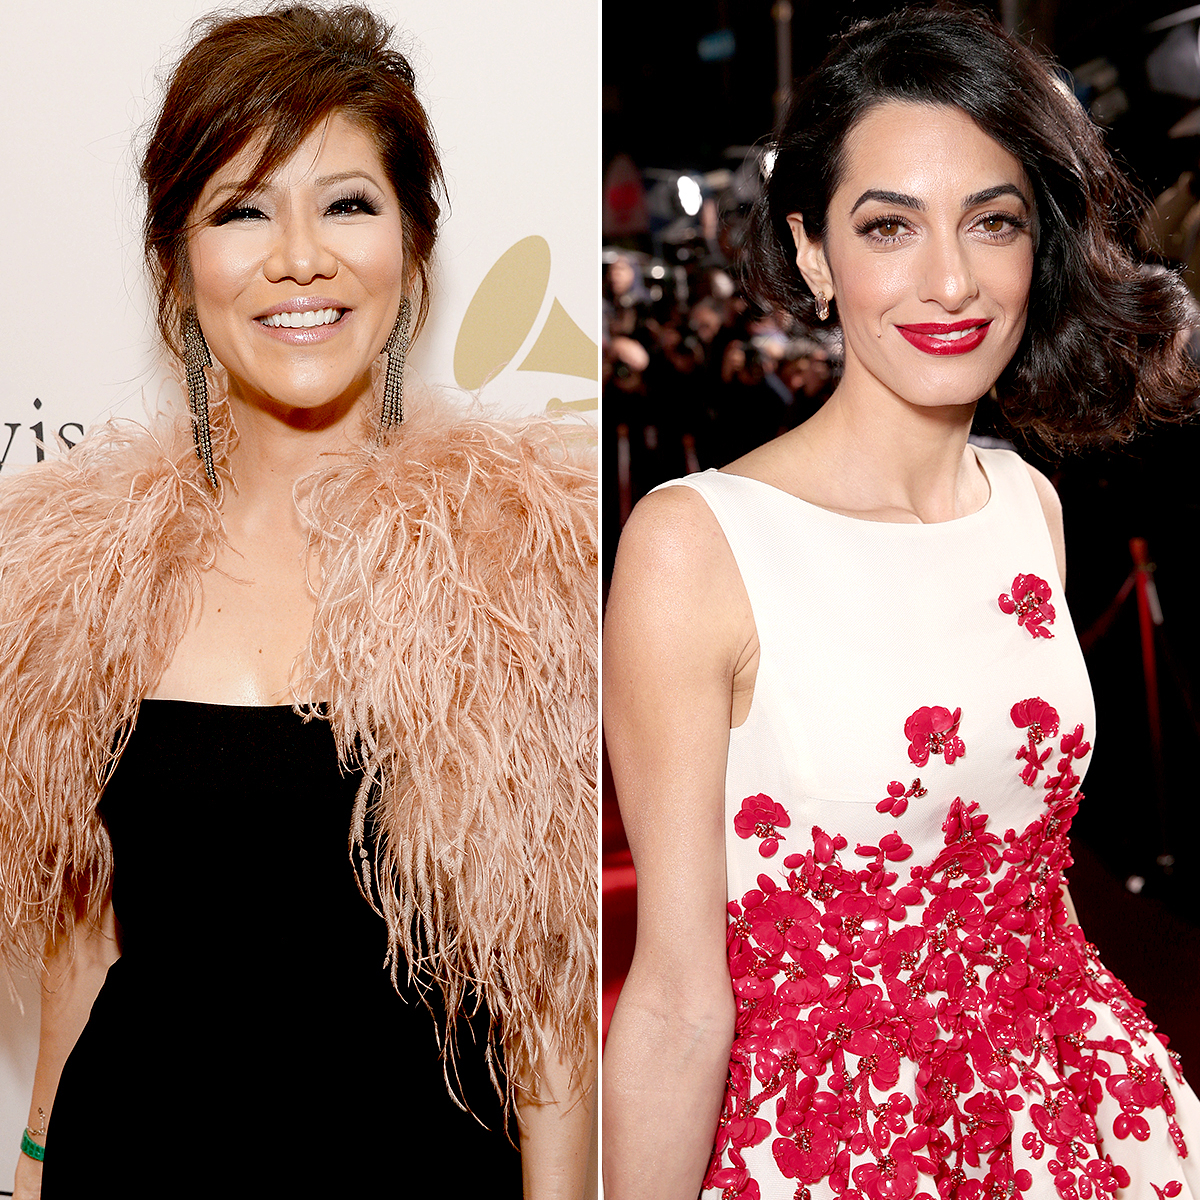 Julie Chen and Amal Clooney